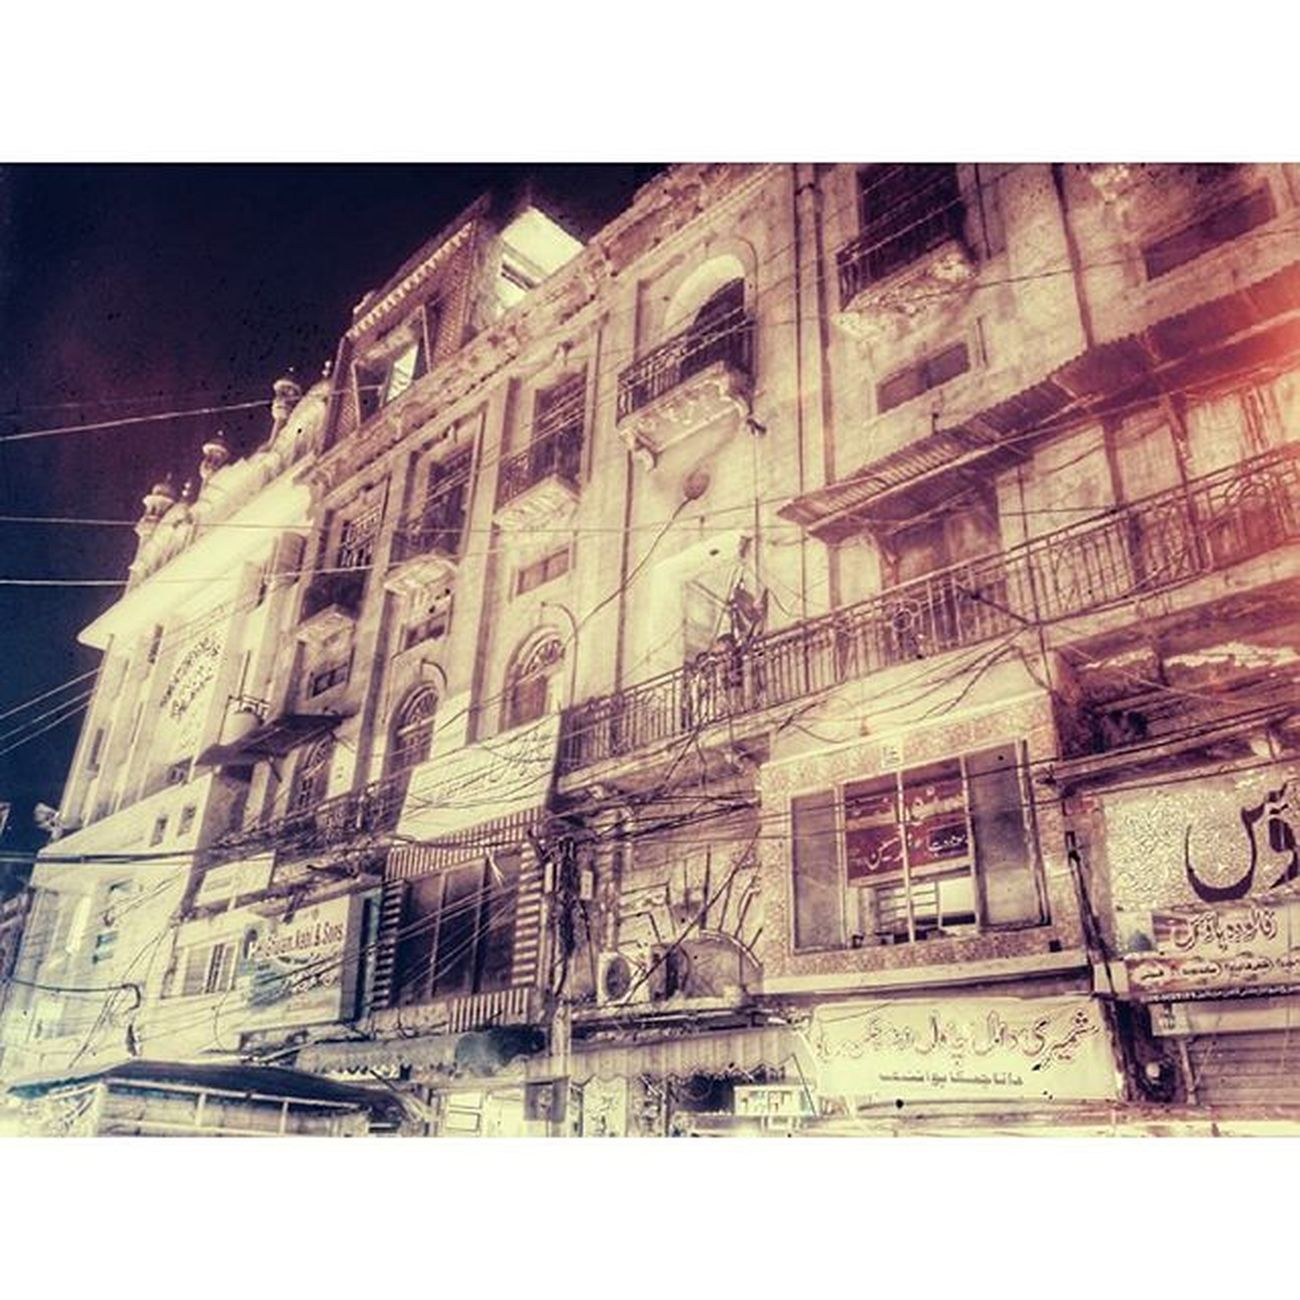 شاندار ماضی کی تلاش Lahore Dragdays Walledcity Pakistan Old Architecture Alonetogether Timelapse Film Indie